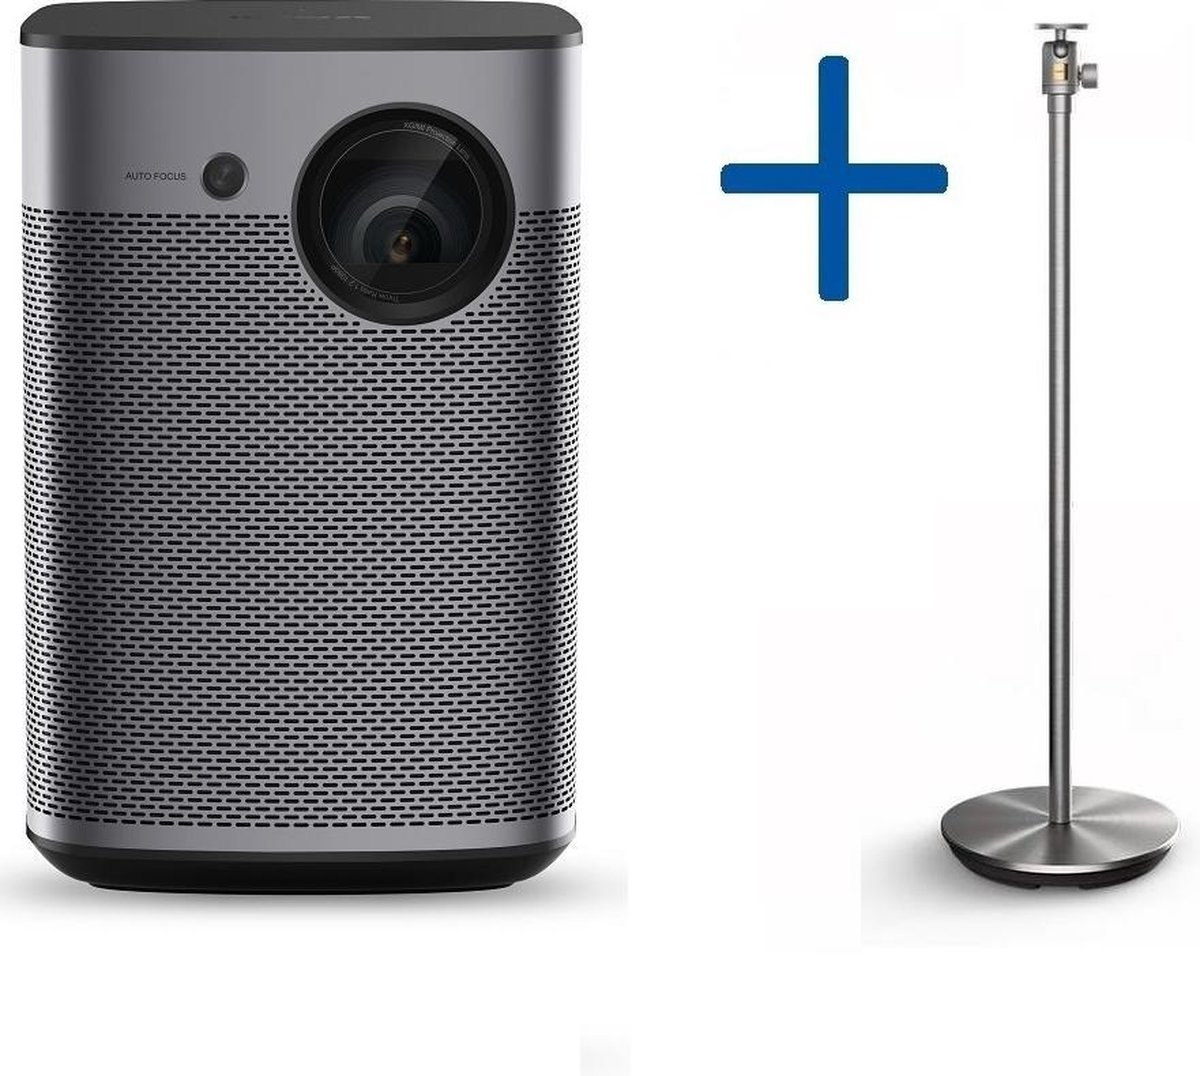 XGIMI Halo beamer + Floor Stand beamerstatief | Portable smartbeamer met Android TV & Harman/Kardon speaker - mini beamer - mini smart beamer